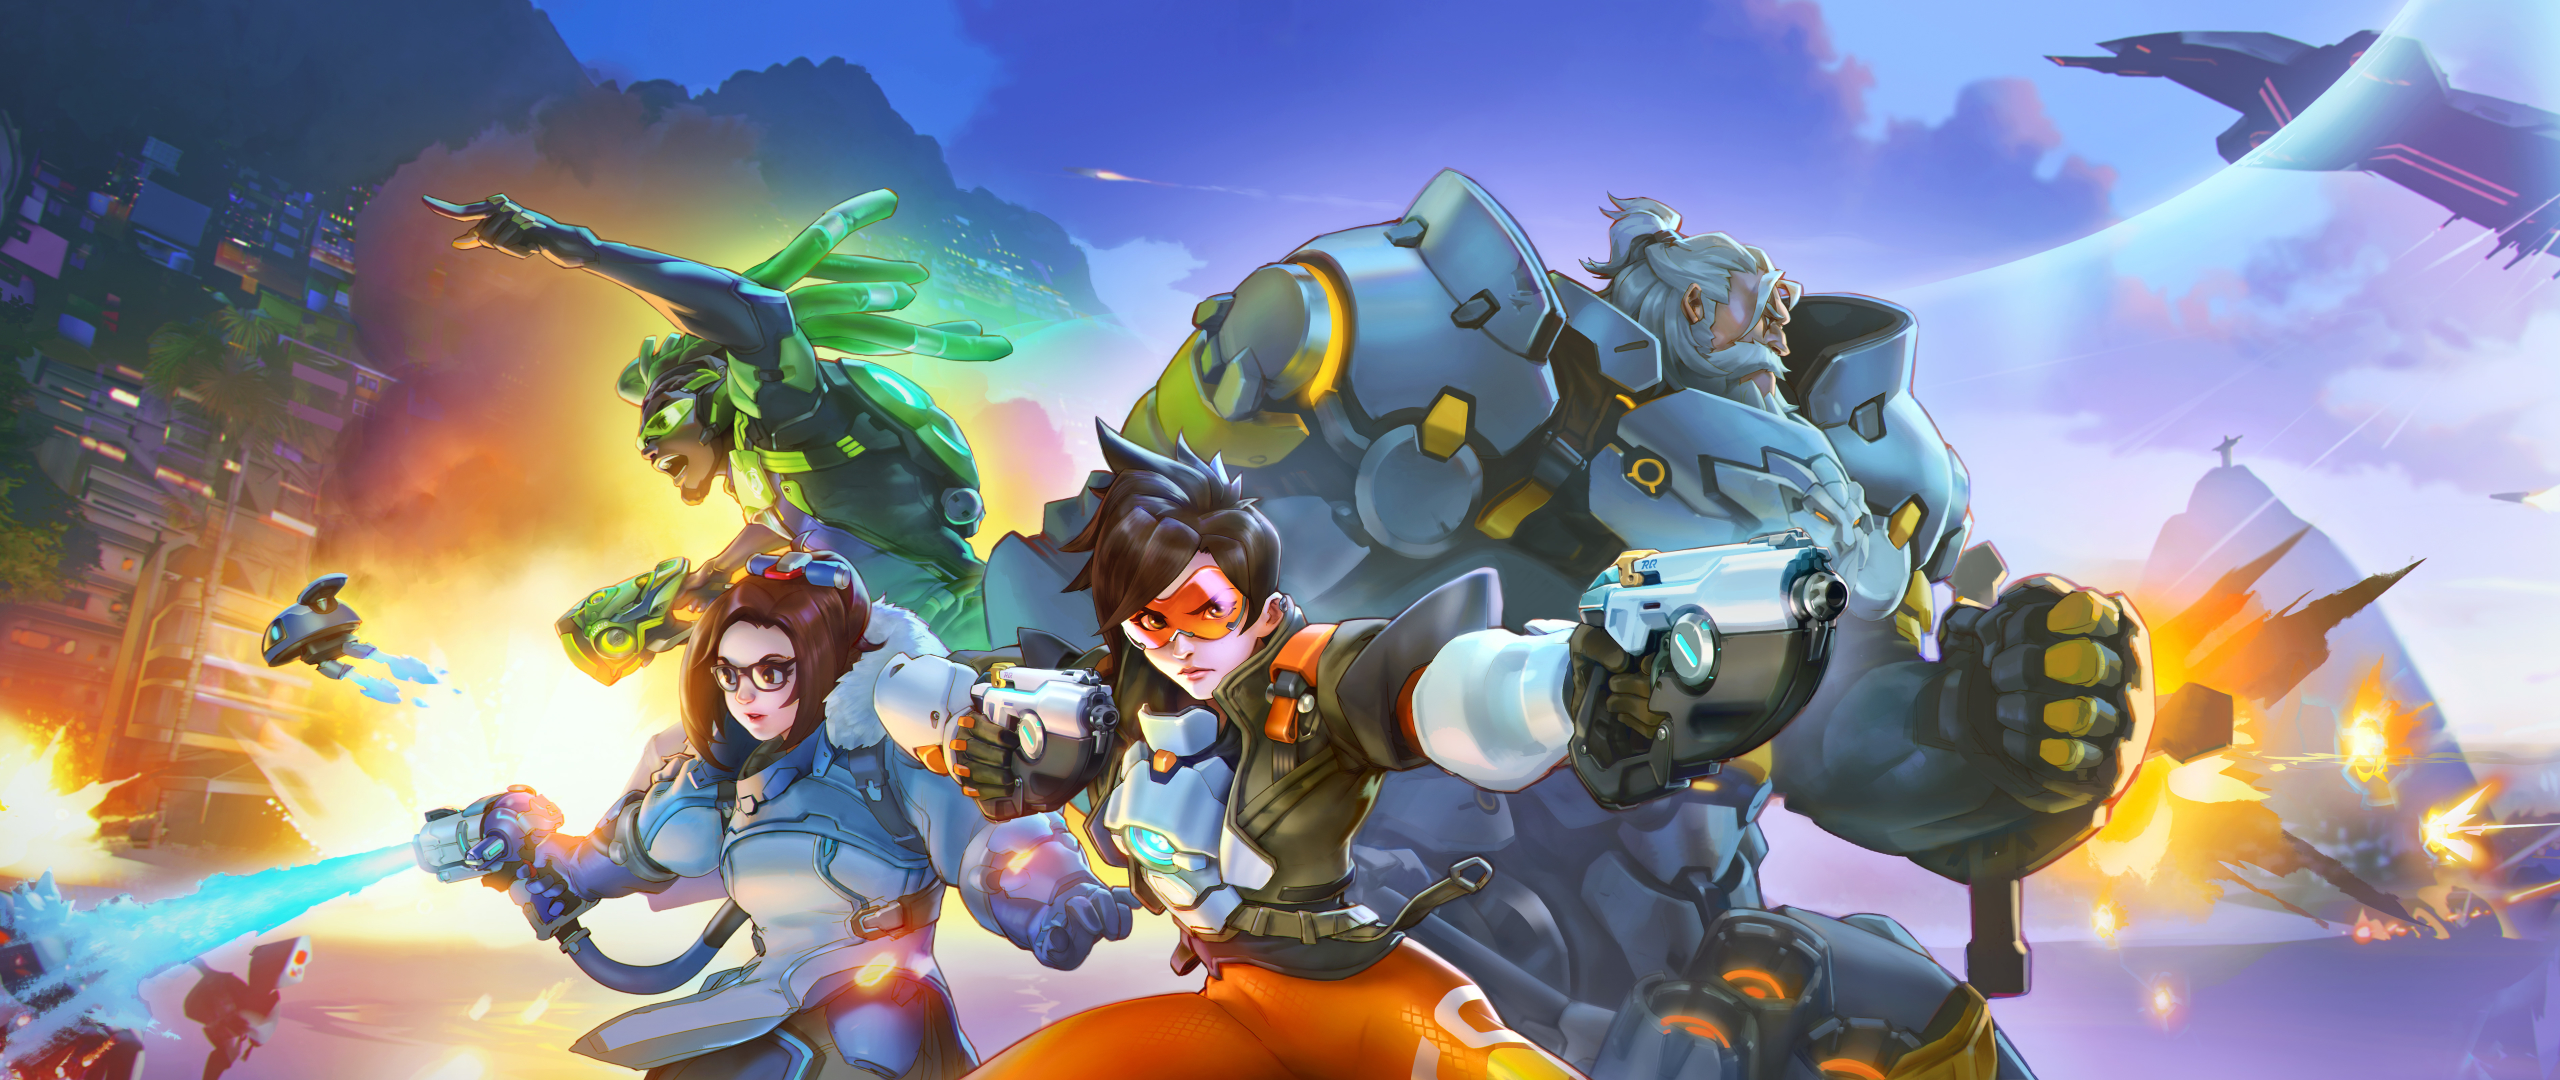 2560x1080 Overwatch 2 Heroes 2560x1080 Resolution Wallpaper Hd Games 4k Wallpapers Images Photos And Background